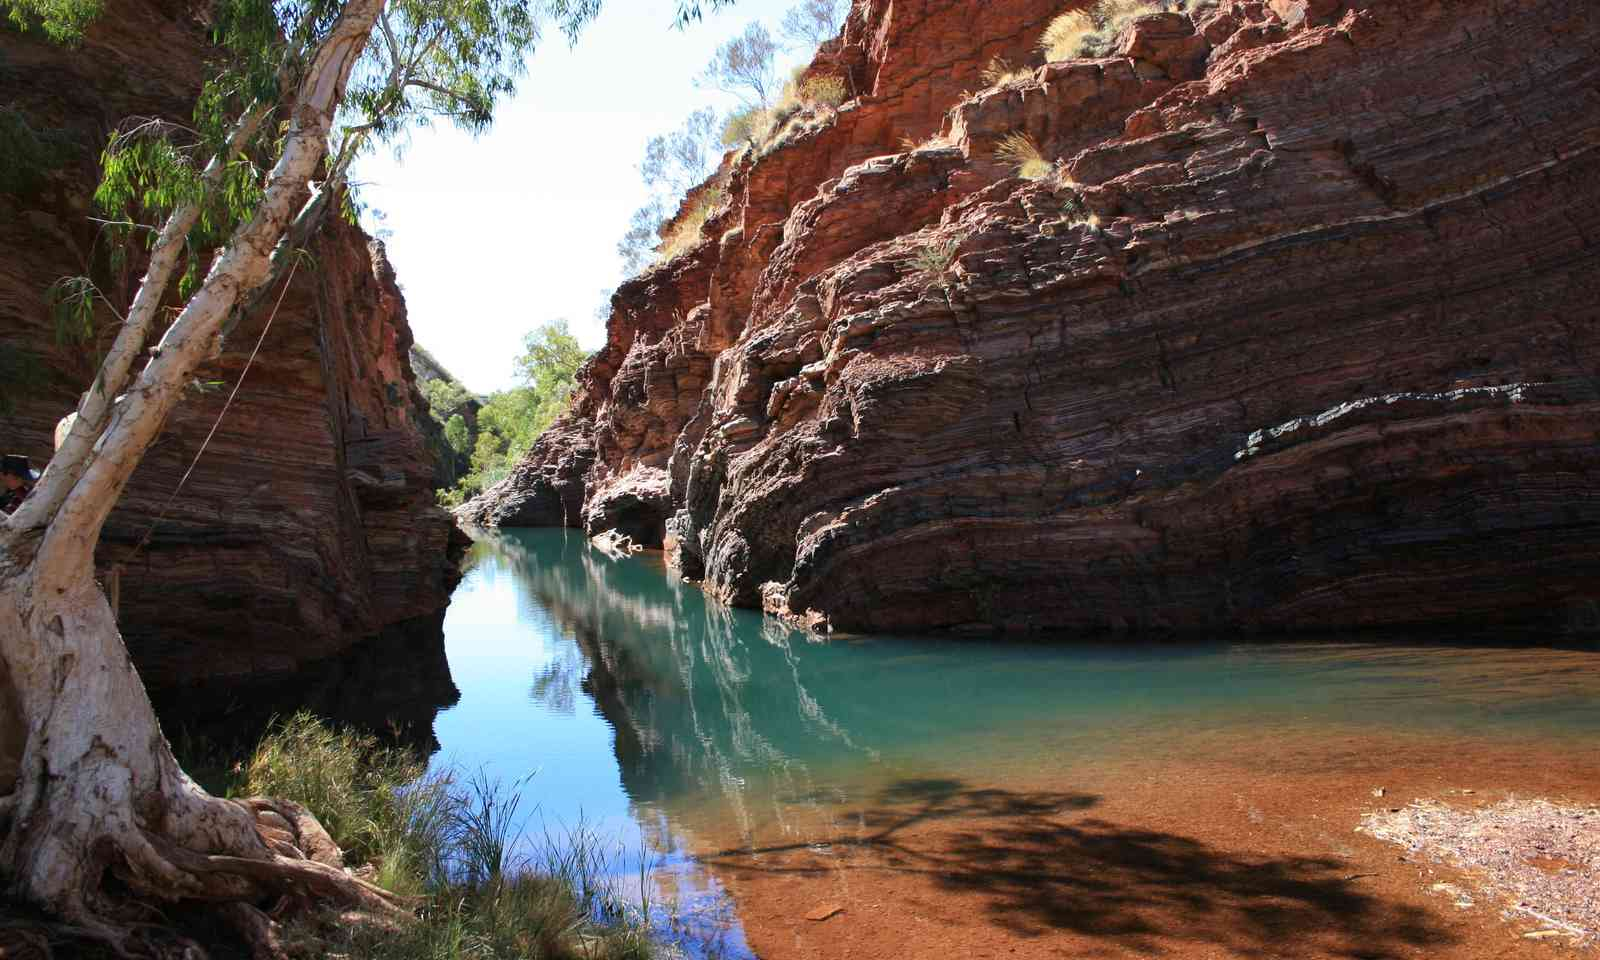 Hamersley Gorge, Karijini National Park (Dreamstime)